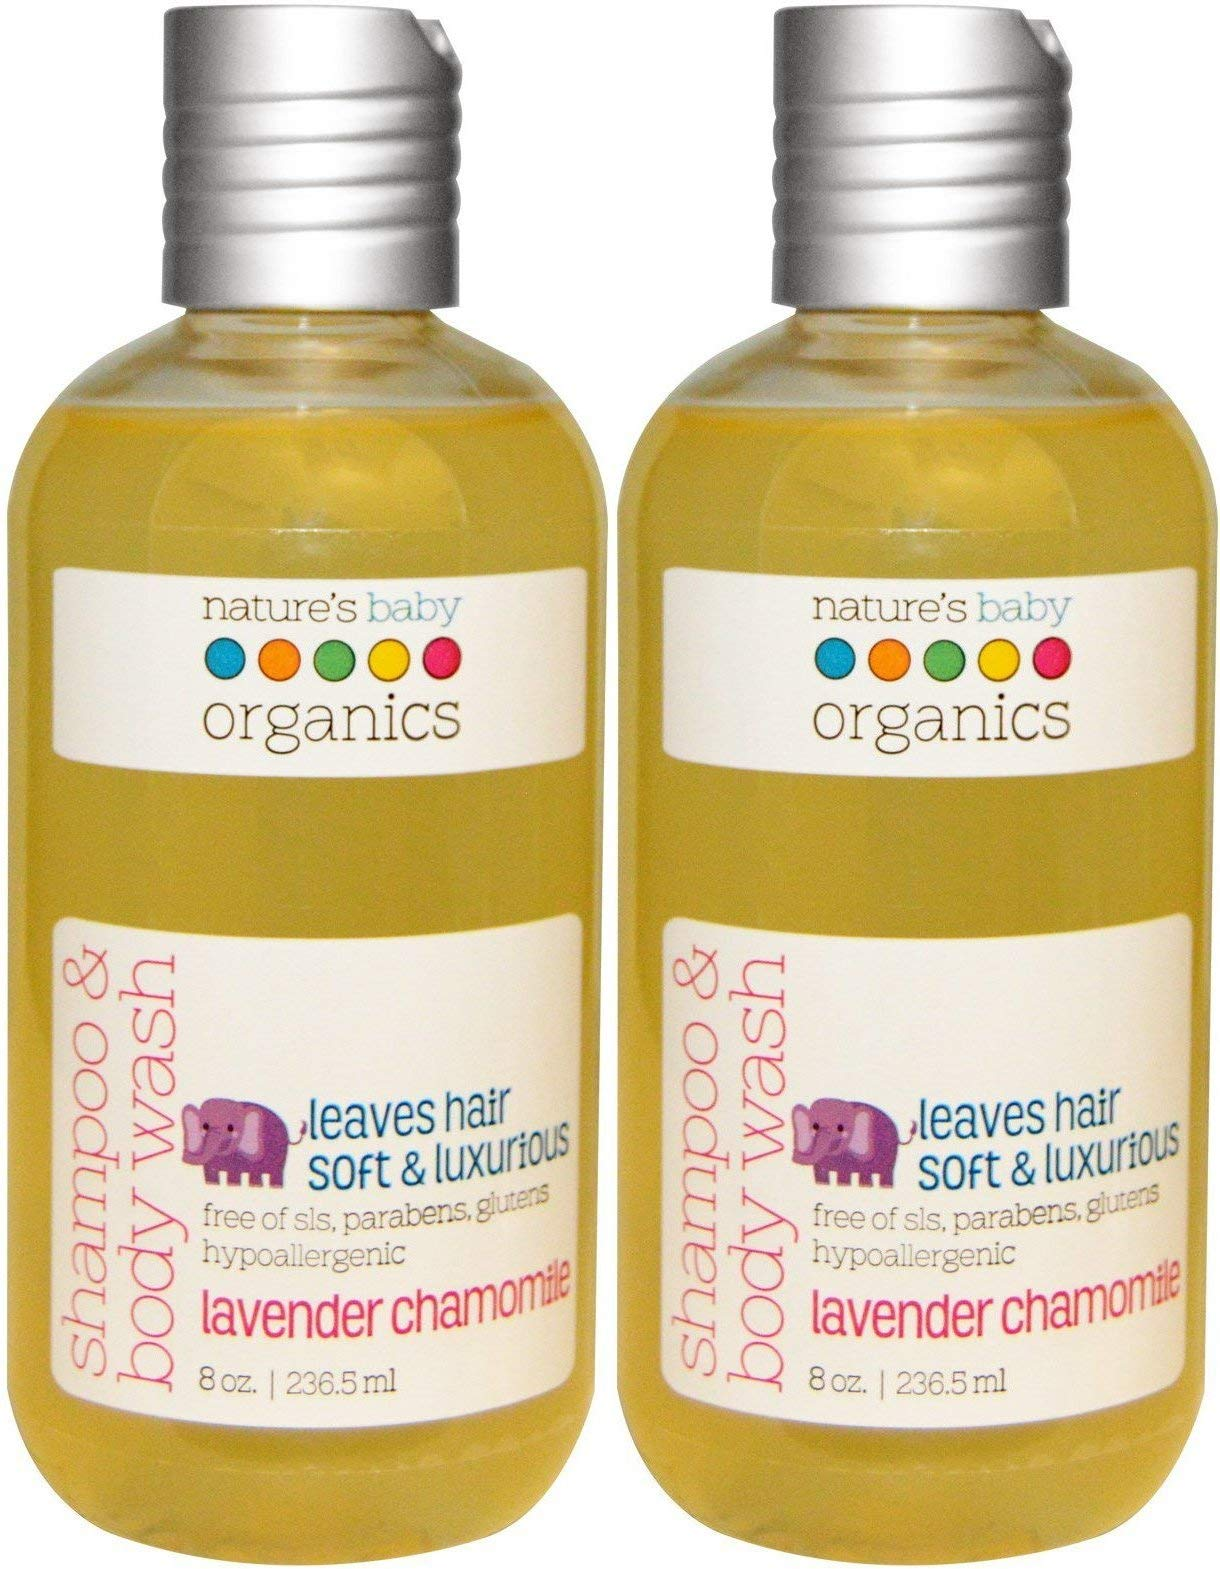 Nature's Baby Organics Lavender Chamomile Shampoo & Body Wash (Pack Of 2), With Aloe Vera, Chamomile and Vanilla, 8 Oz by Natural Beauty Planet